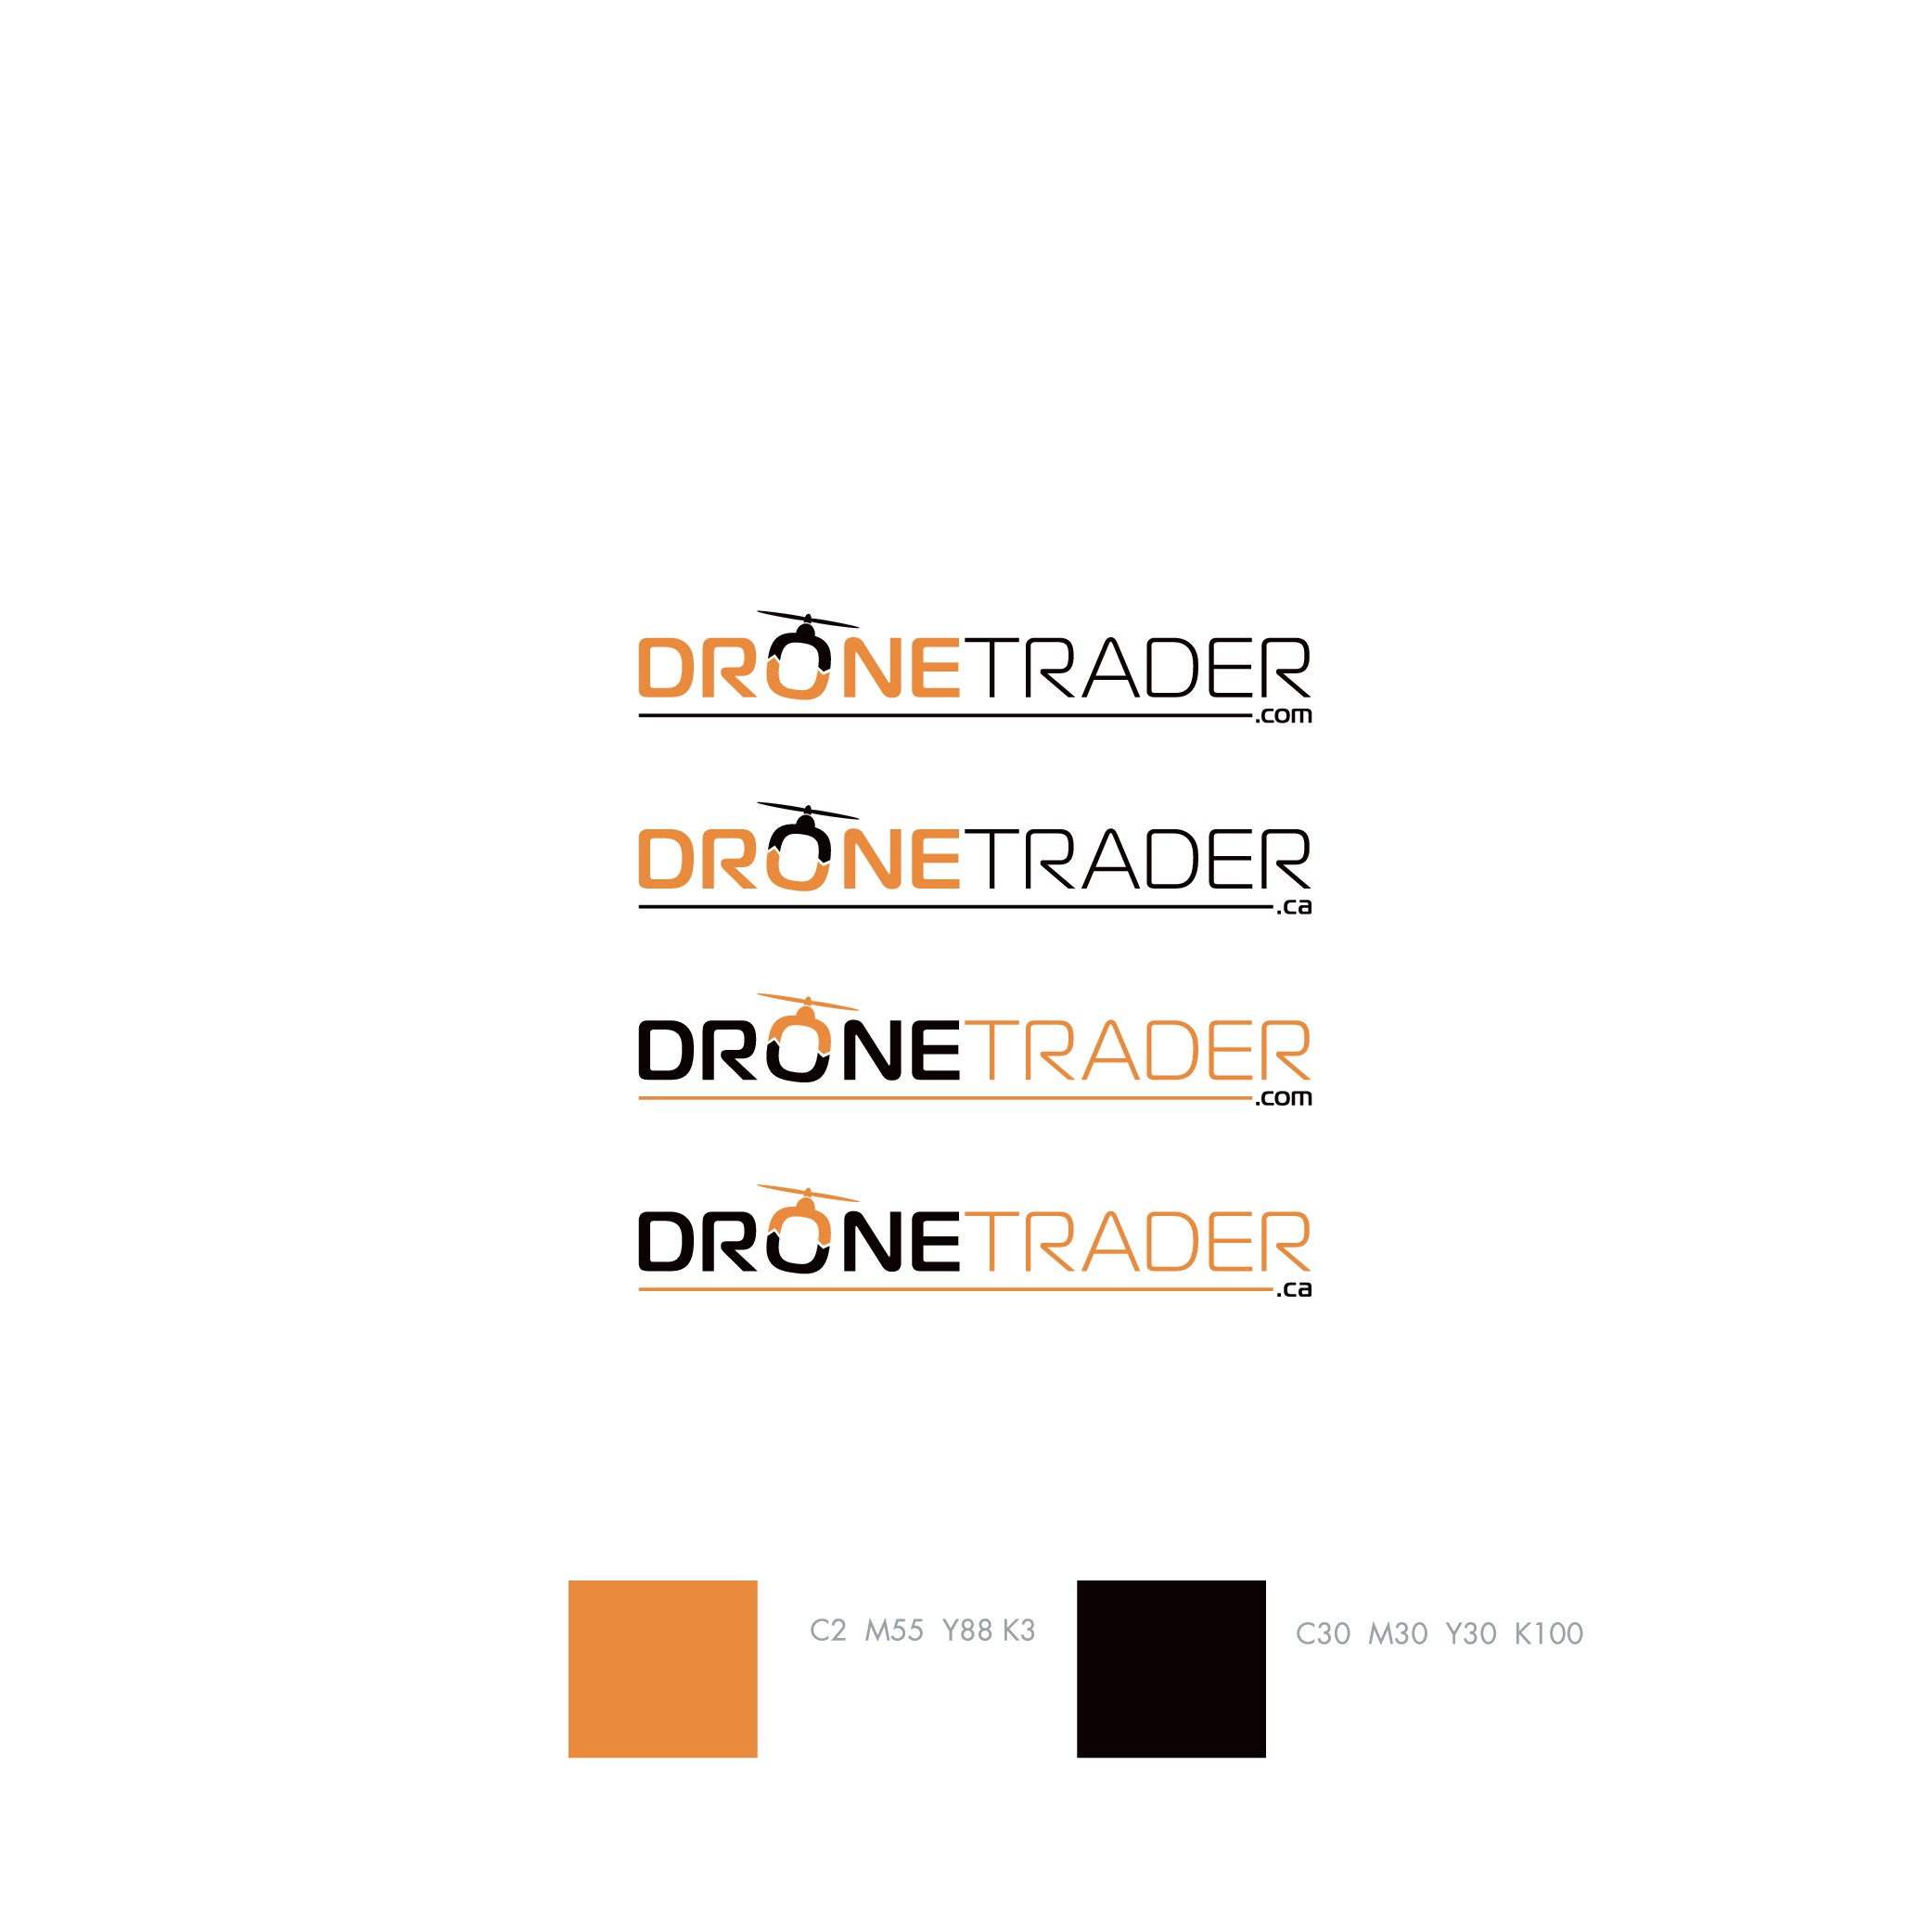 DroneTrader Classifieds Site Logo & Brand Guide Needed